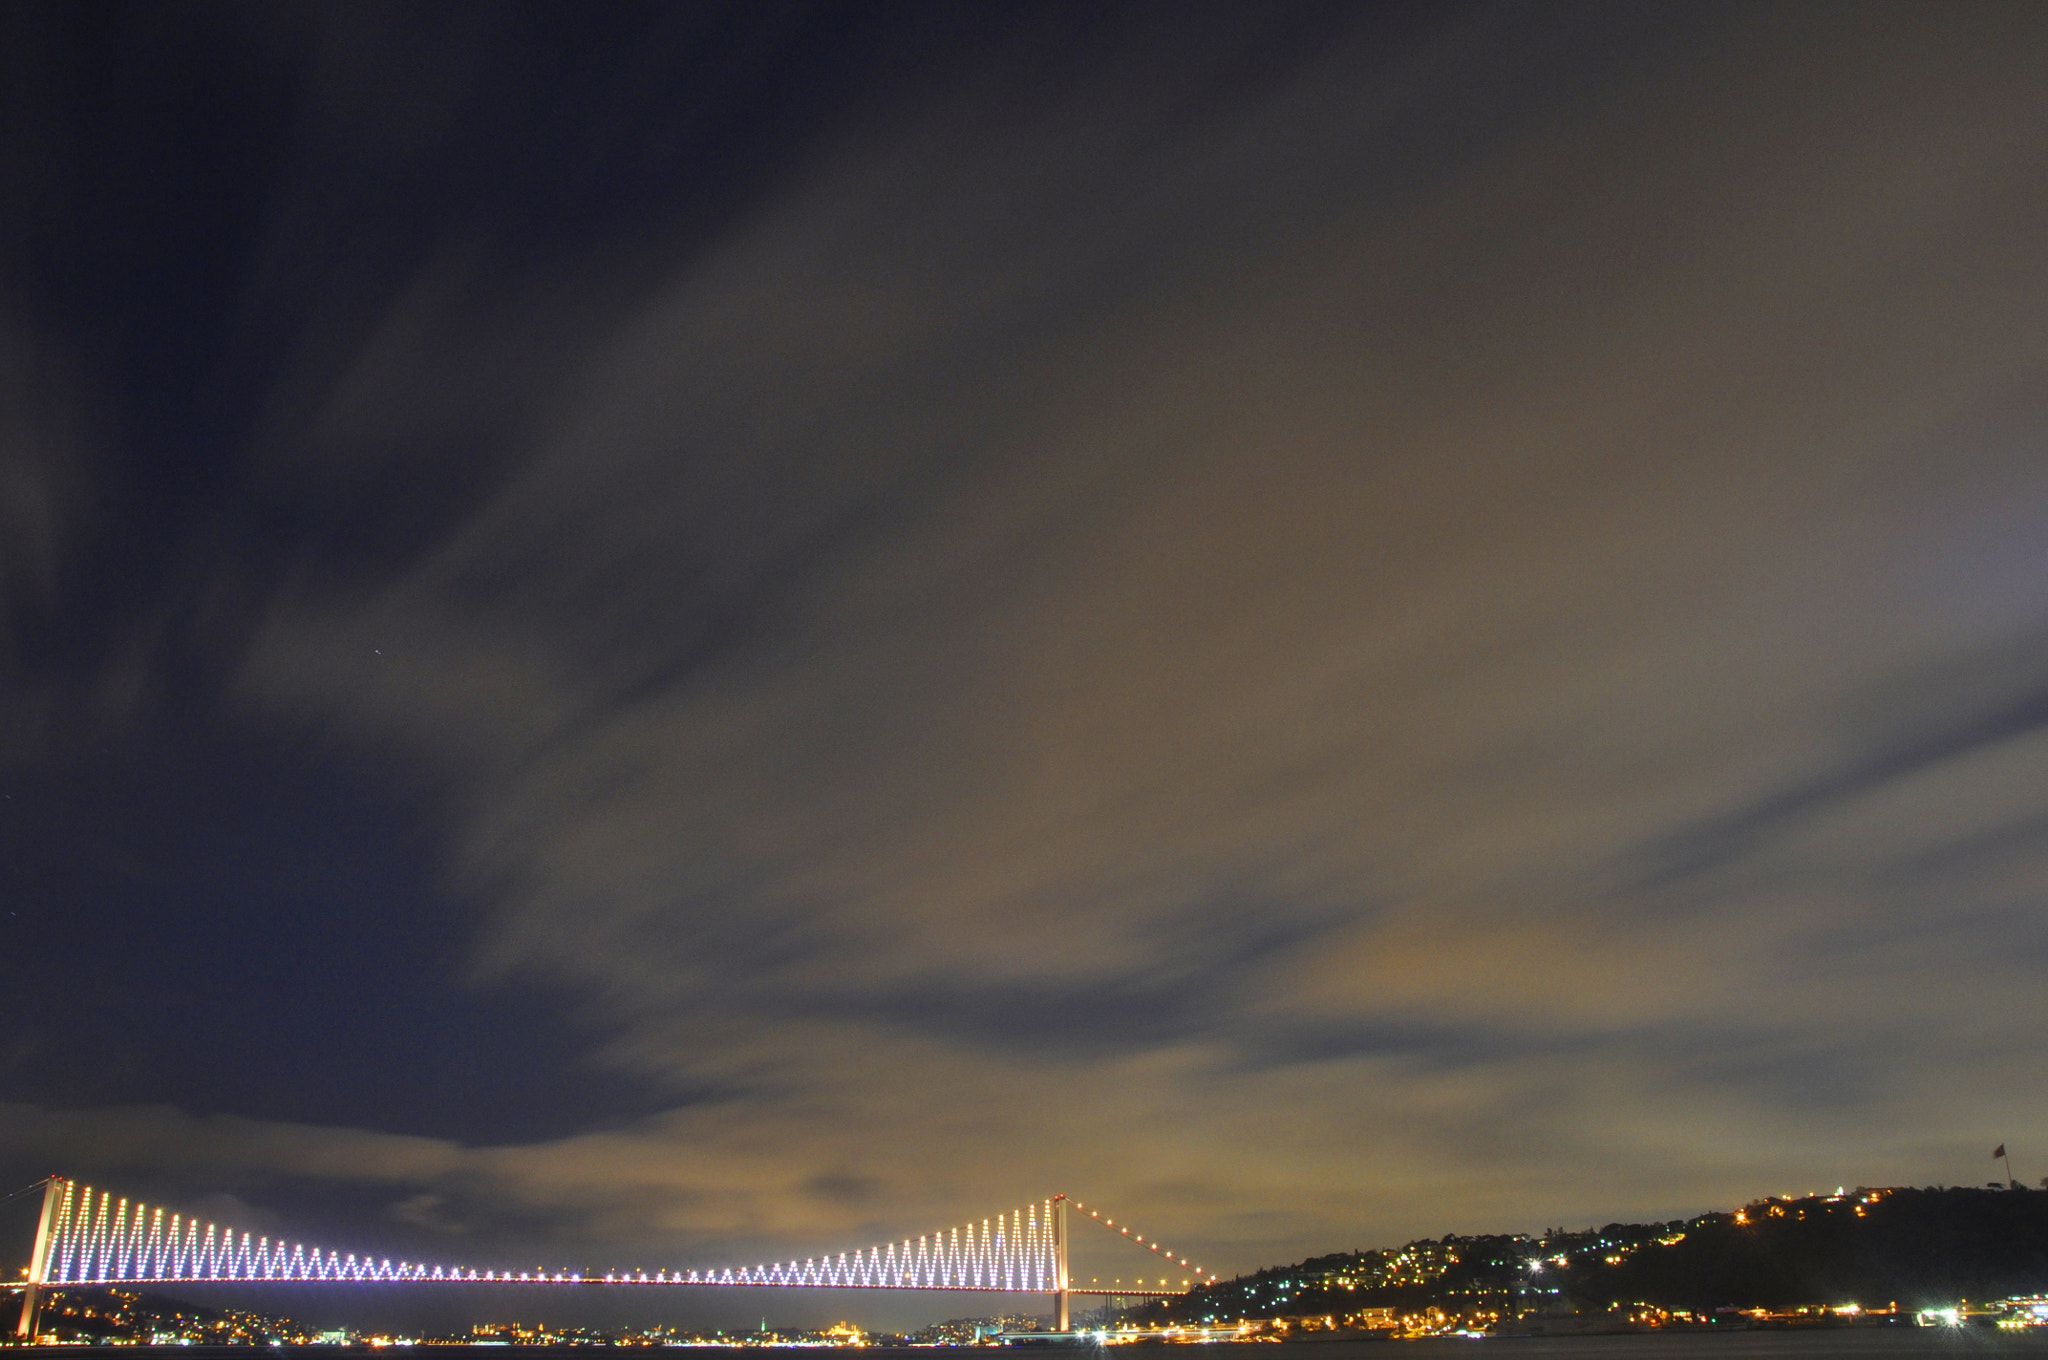 Photograph Bosphorus Bridge by Melih Gün on 500px